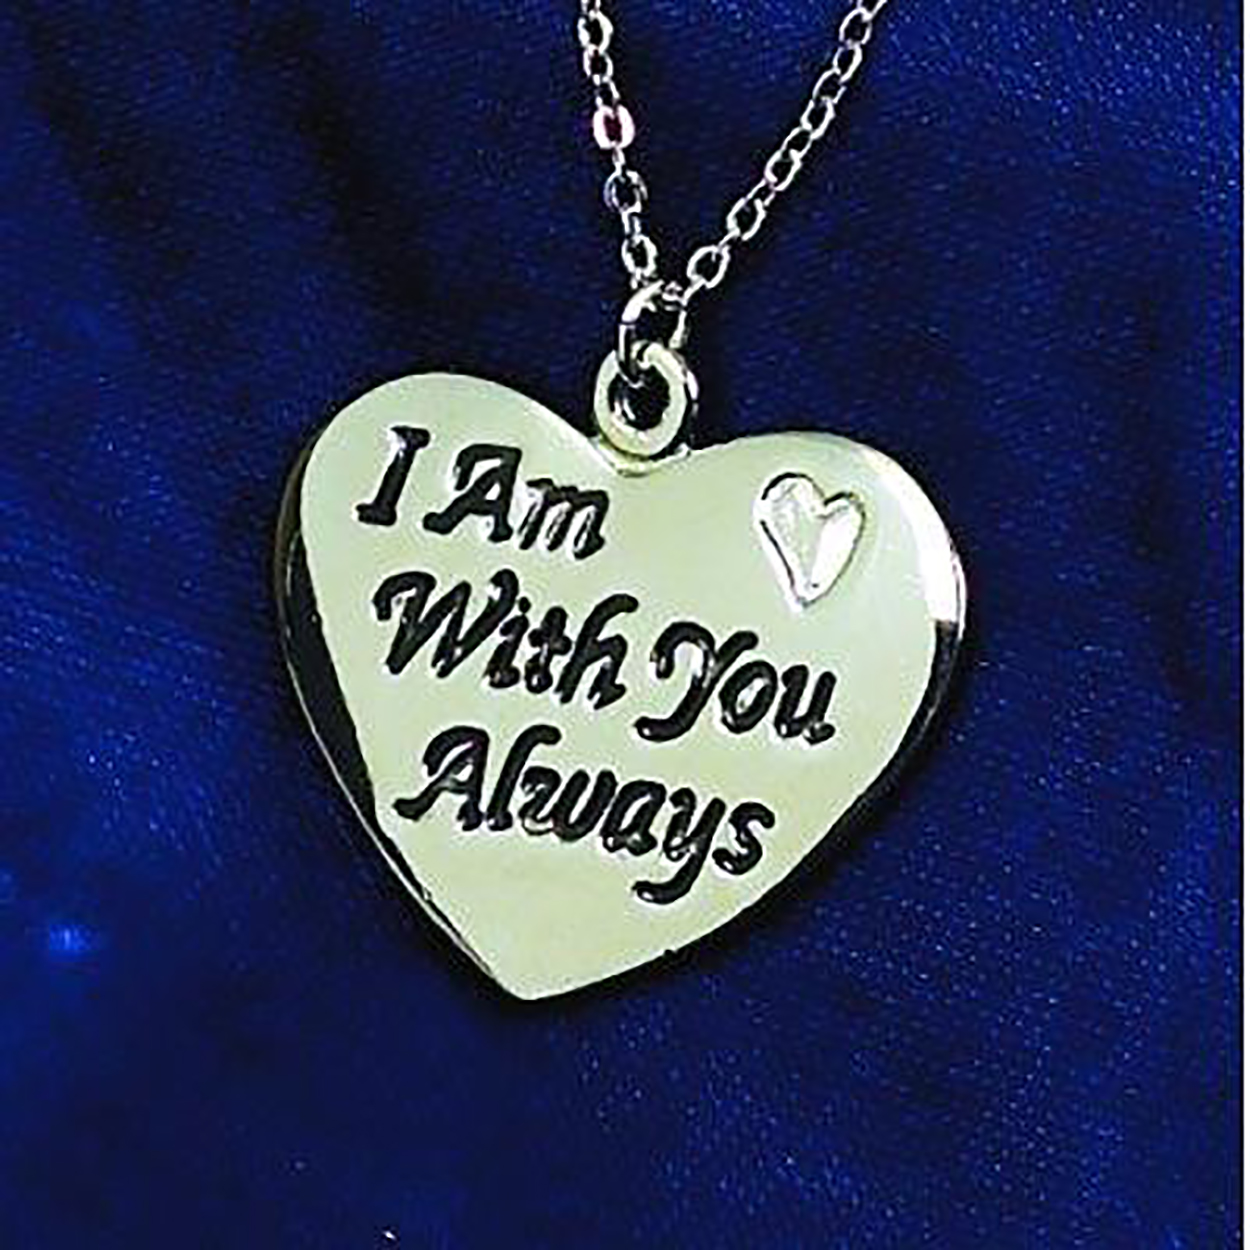 I Am With You Always heart pendant